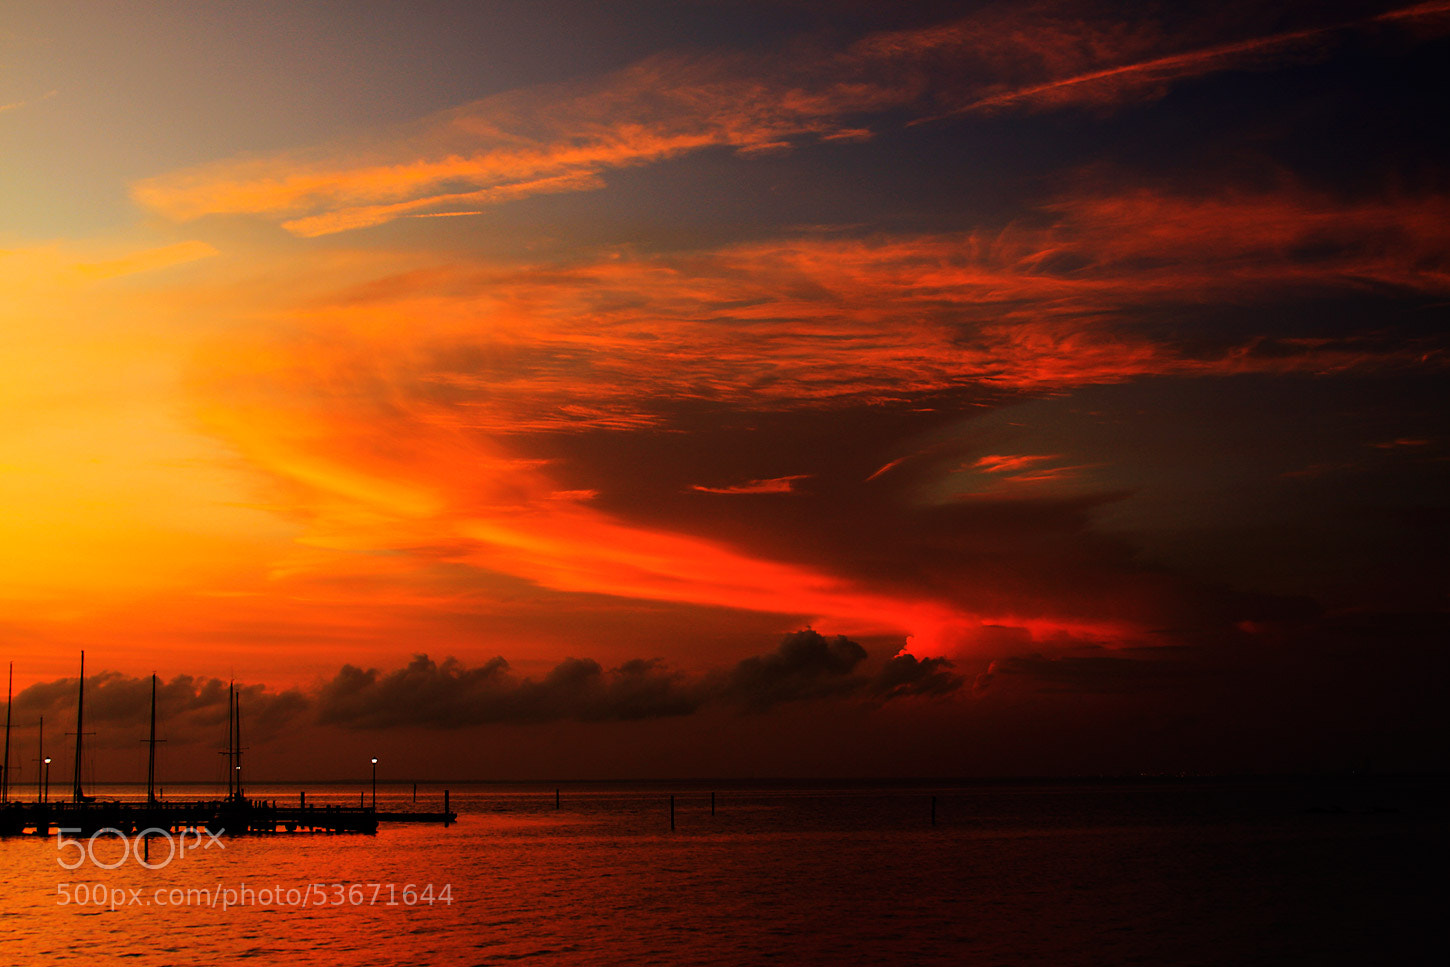 Photograph Sittin' On the Dock of the Bay by Michael Rollins on 500px